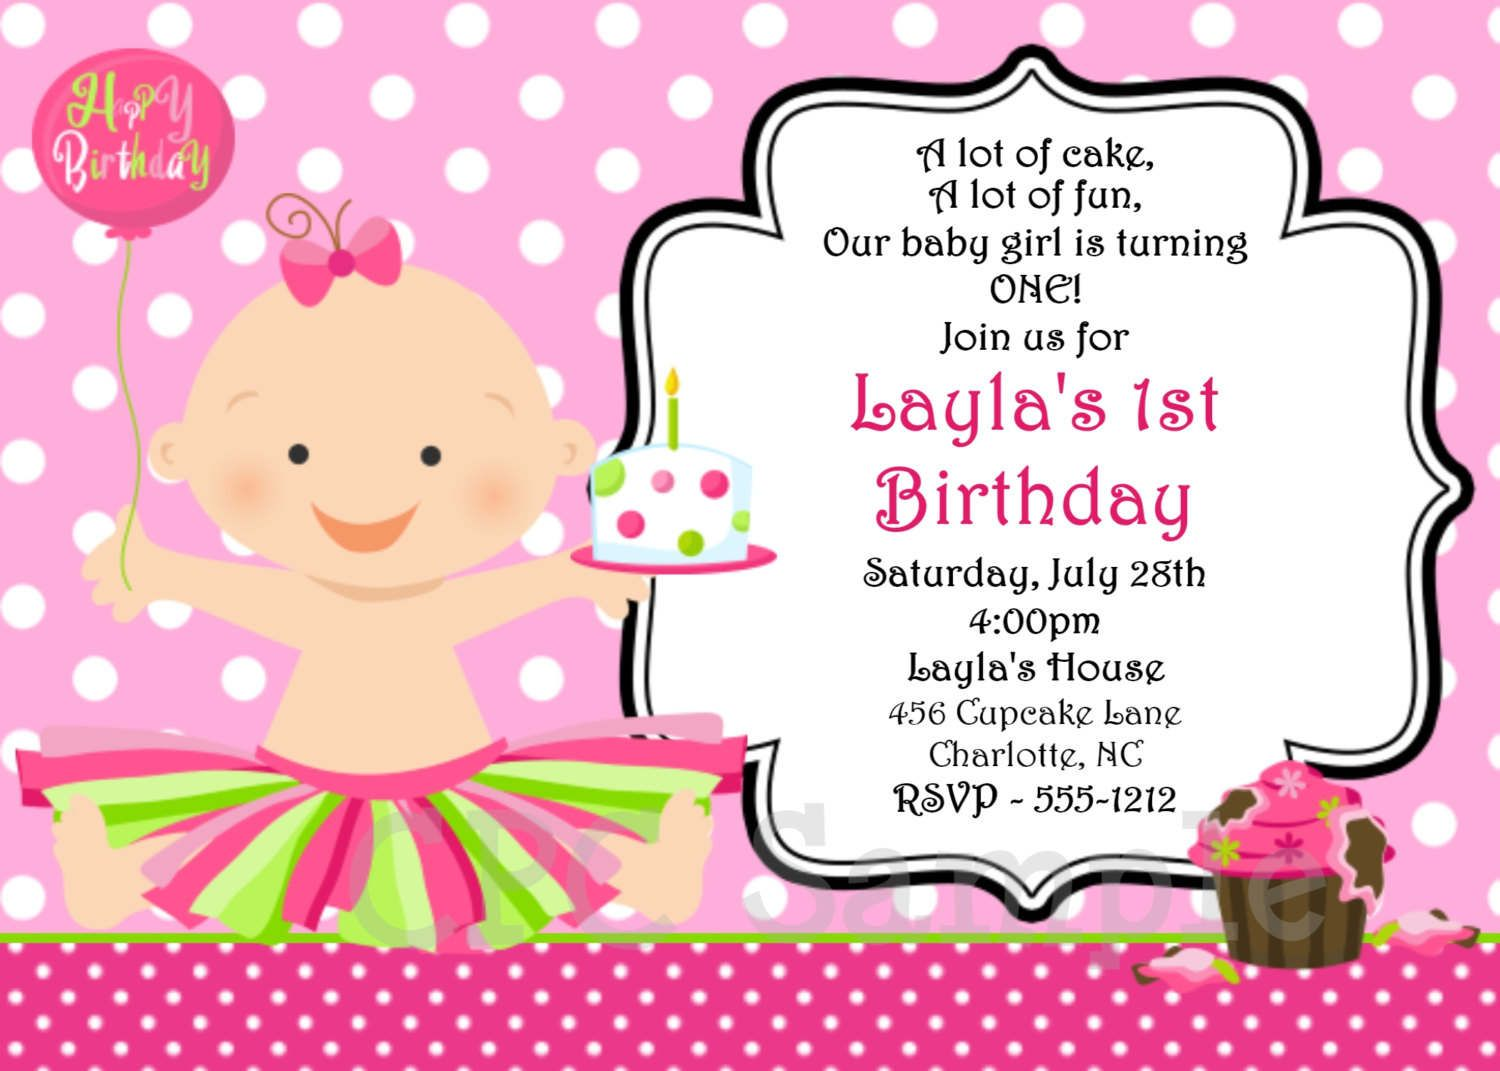 Birthday Invites Free Invitation Maker Images Downloads Online Invitations Party